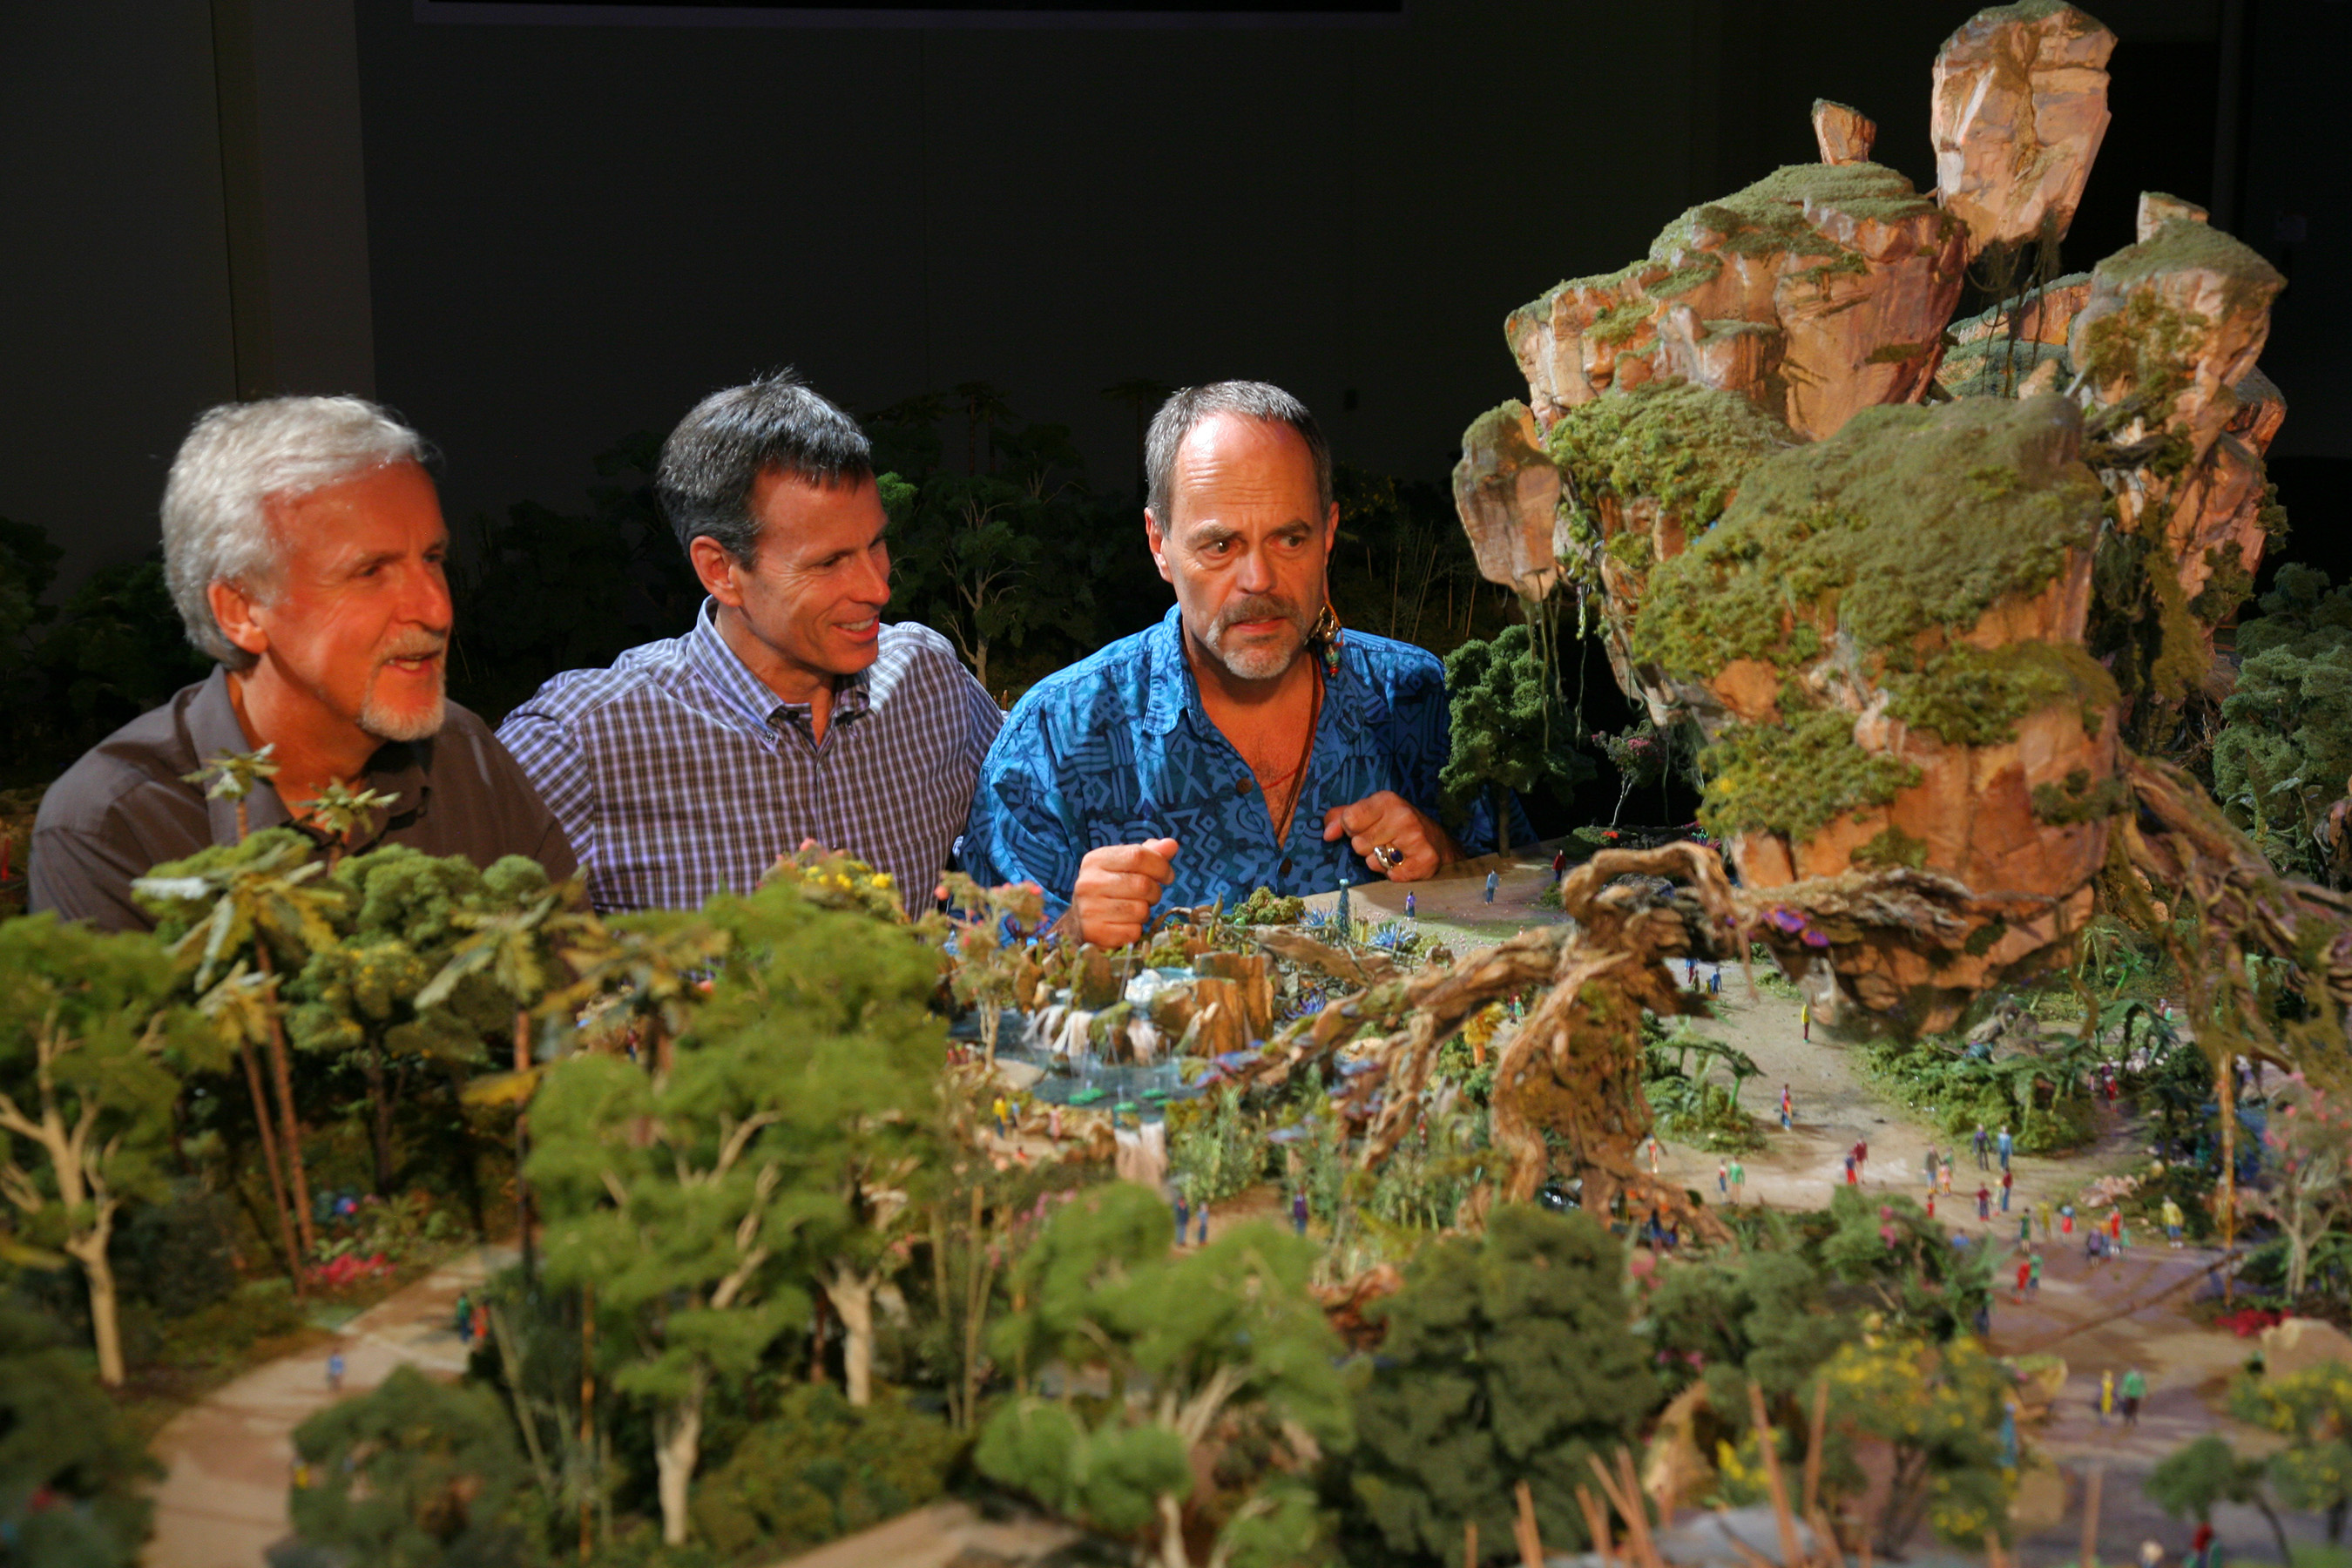 AVATAR project model at Walt Disney Imagineering with Joe Rohde, Tom Staggs and James Cameron